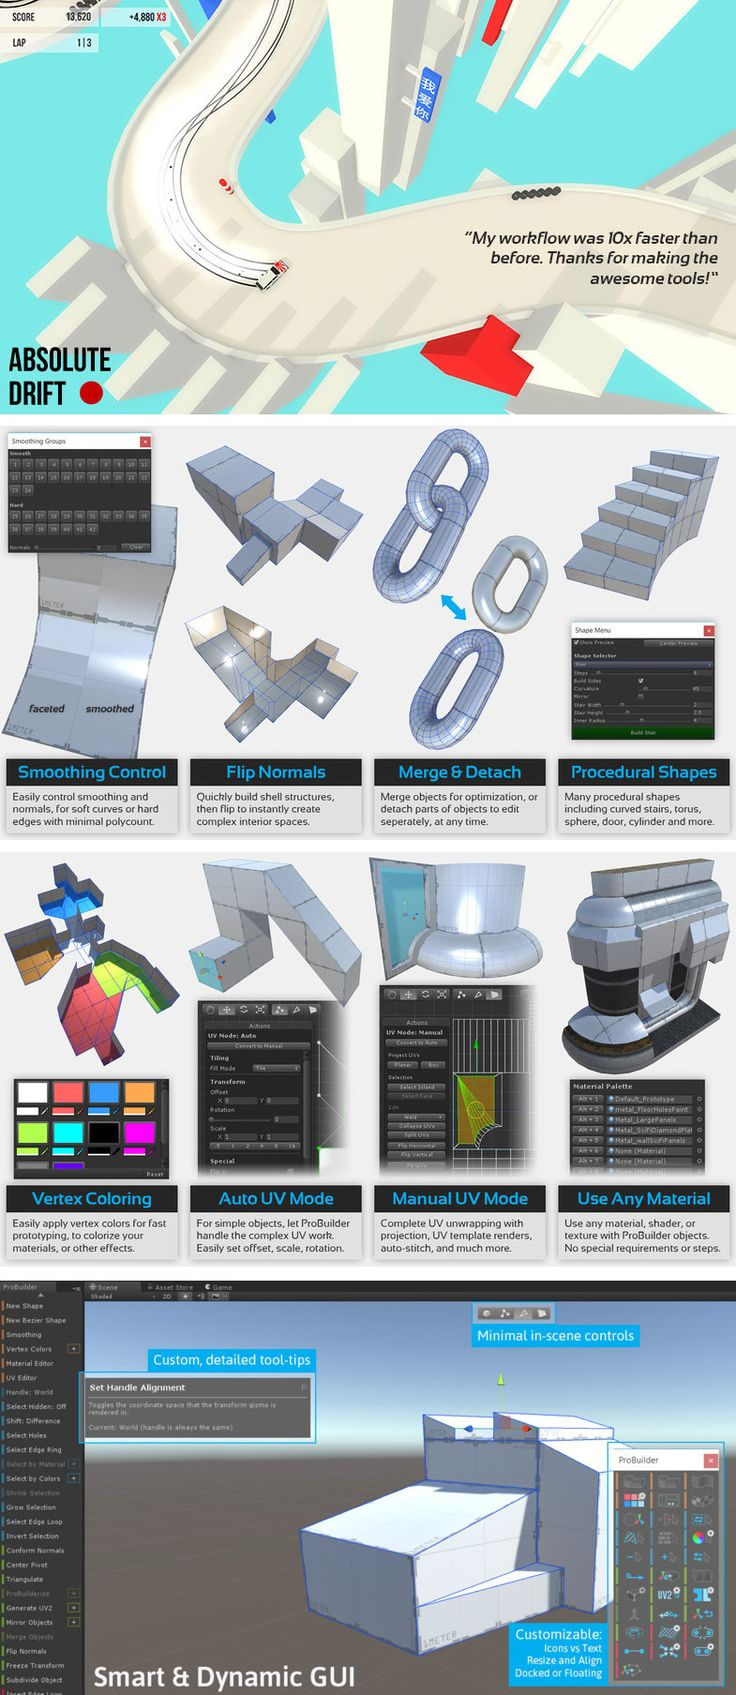 ProBuilder Advanced Proudly used in major games including Tinertia, SUPERHOT, Republique, STRAFE and many more. Over 400 reviews and a 5-star rating on the Unity Asset Store. Prototype Rapidly Build basic or advanced geometry, right in Unity, with zero creative barriers. Devs agree, ProBuilder is wicked fast and incredibly easy to use- even Collision and UVs are automatically generated. Just build, and have fun!